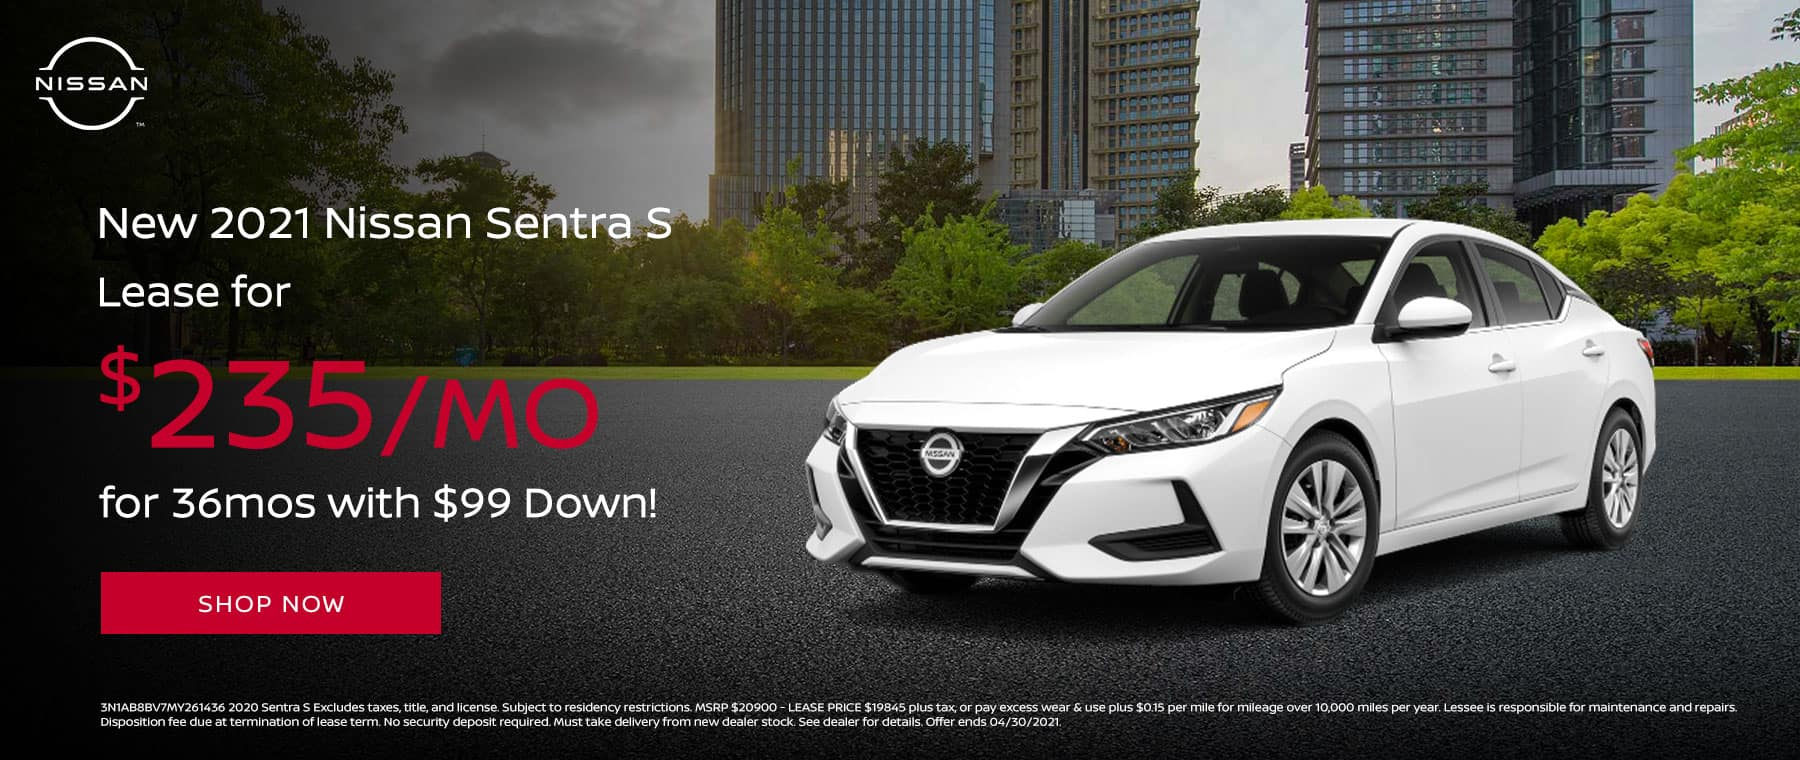 Lease a New 2021 Nissan Sentra S for $235/mo for 36mos with $99 Down!